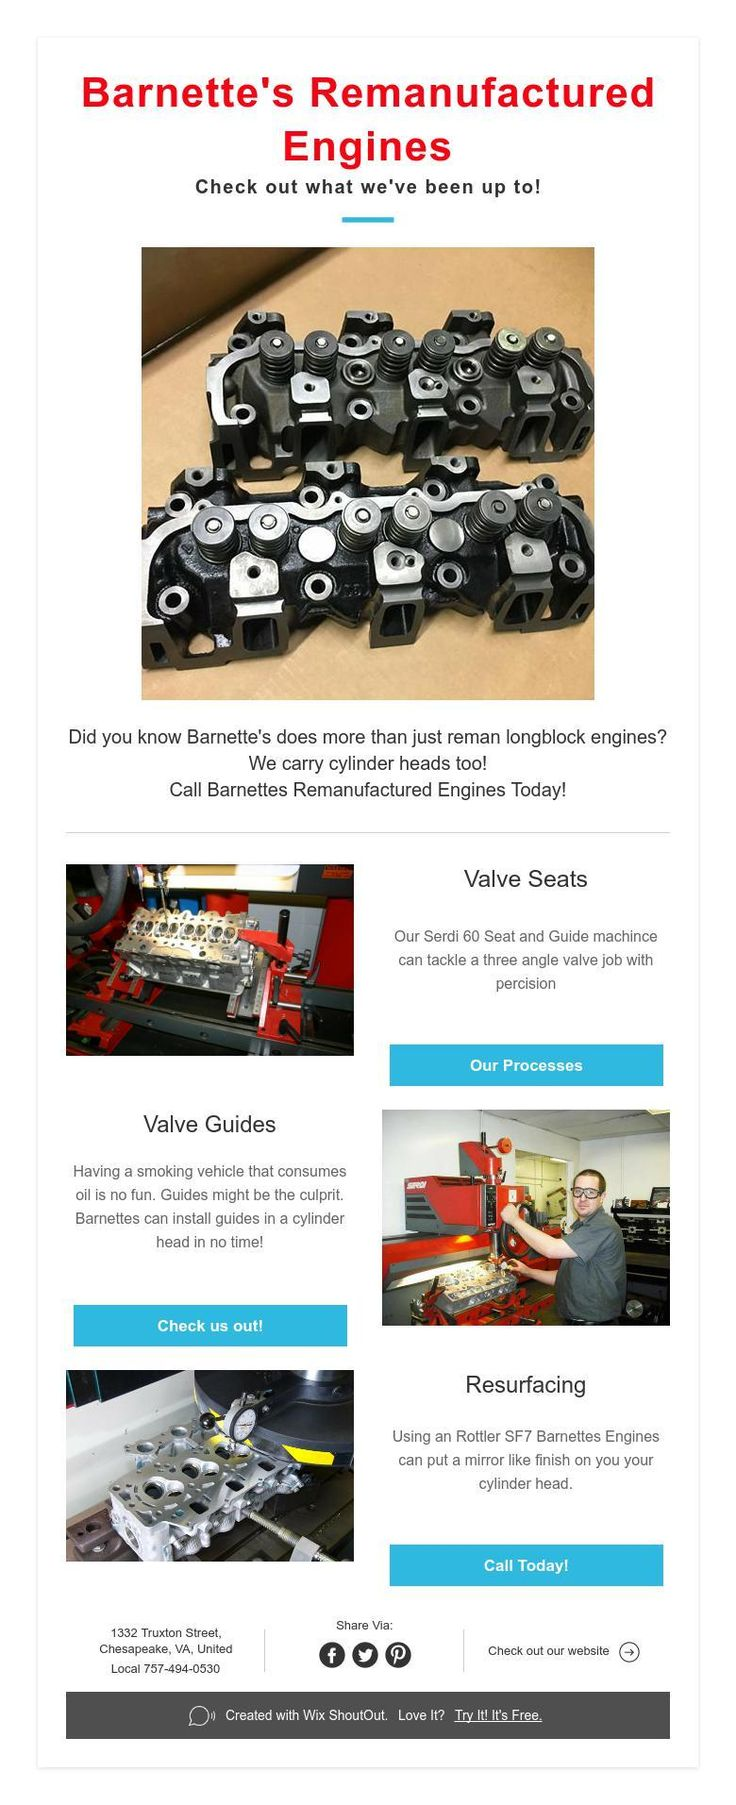 Barnette's Reman Engines-Check out what we've been up to!